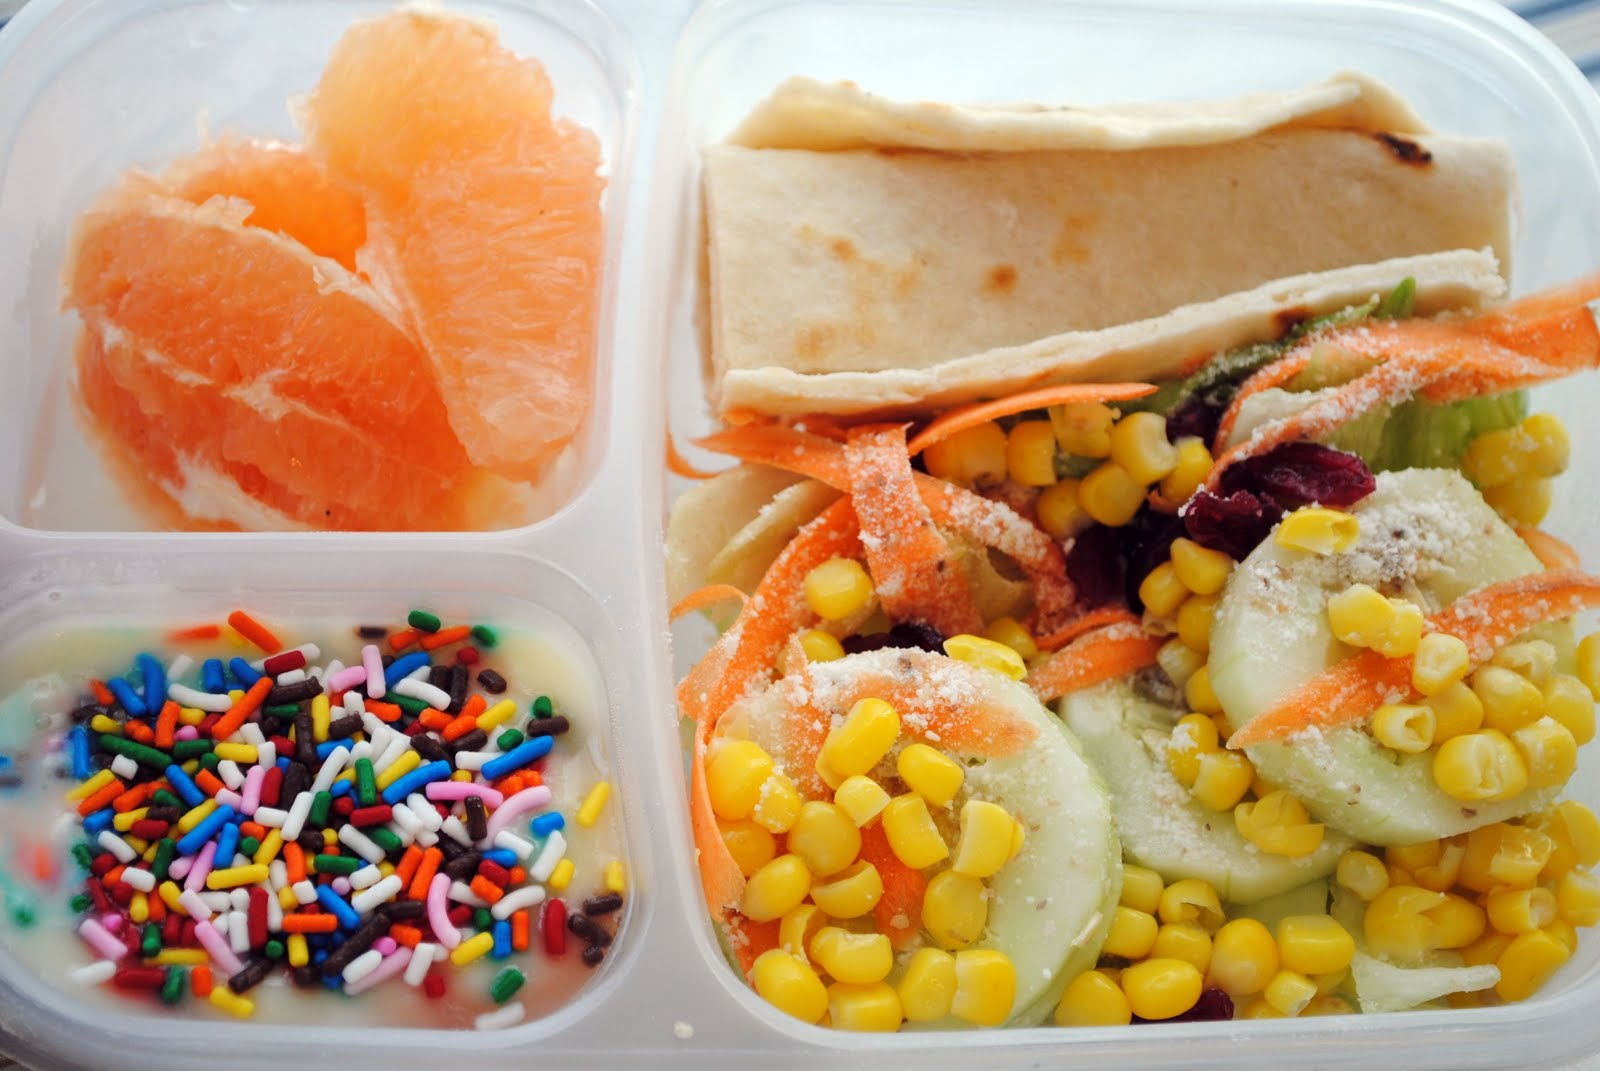 Healthy Lunch Recipes Healthy lunch ideas for the kids or for work. More than healthy resolution-worthy recipes, including tasty salads, wraps, soups and one-bowl dishes. Healthy Soups and Stews; This is an easy recipe that is warm, hearty, healthy, and colorful. The tartness of the cranberries compliments the sweetness of the barbecue.